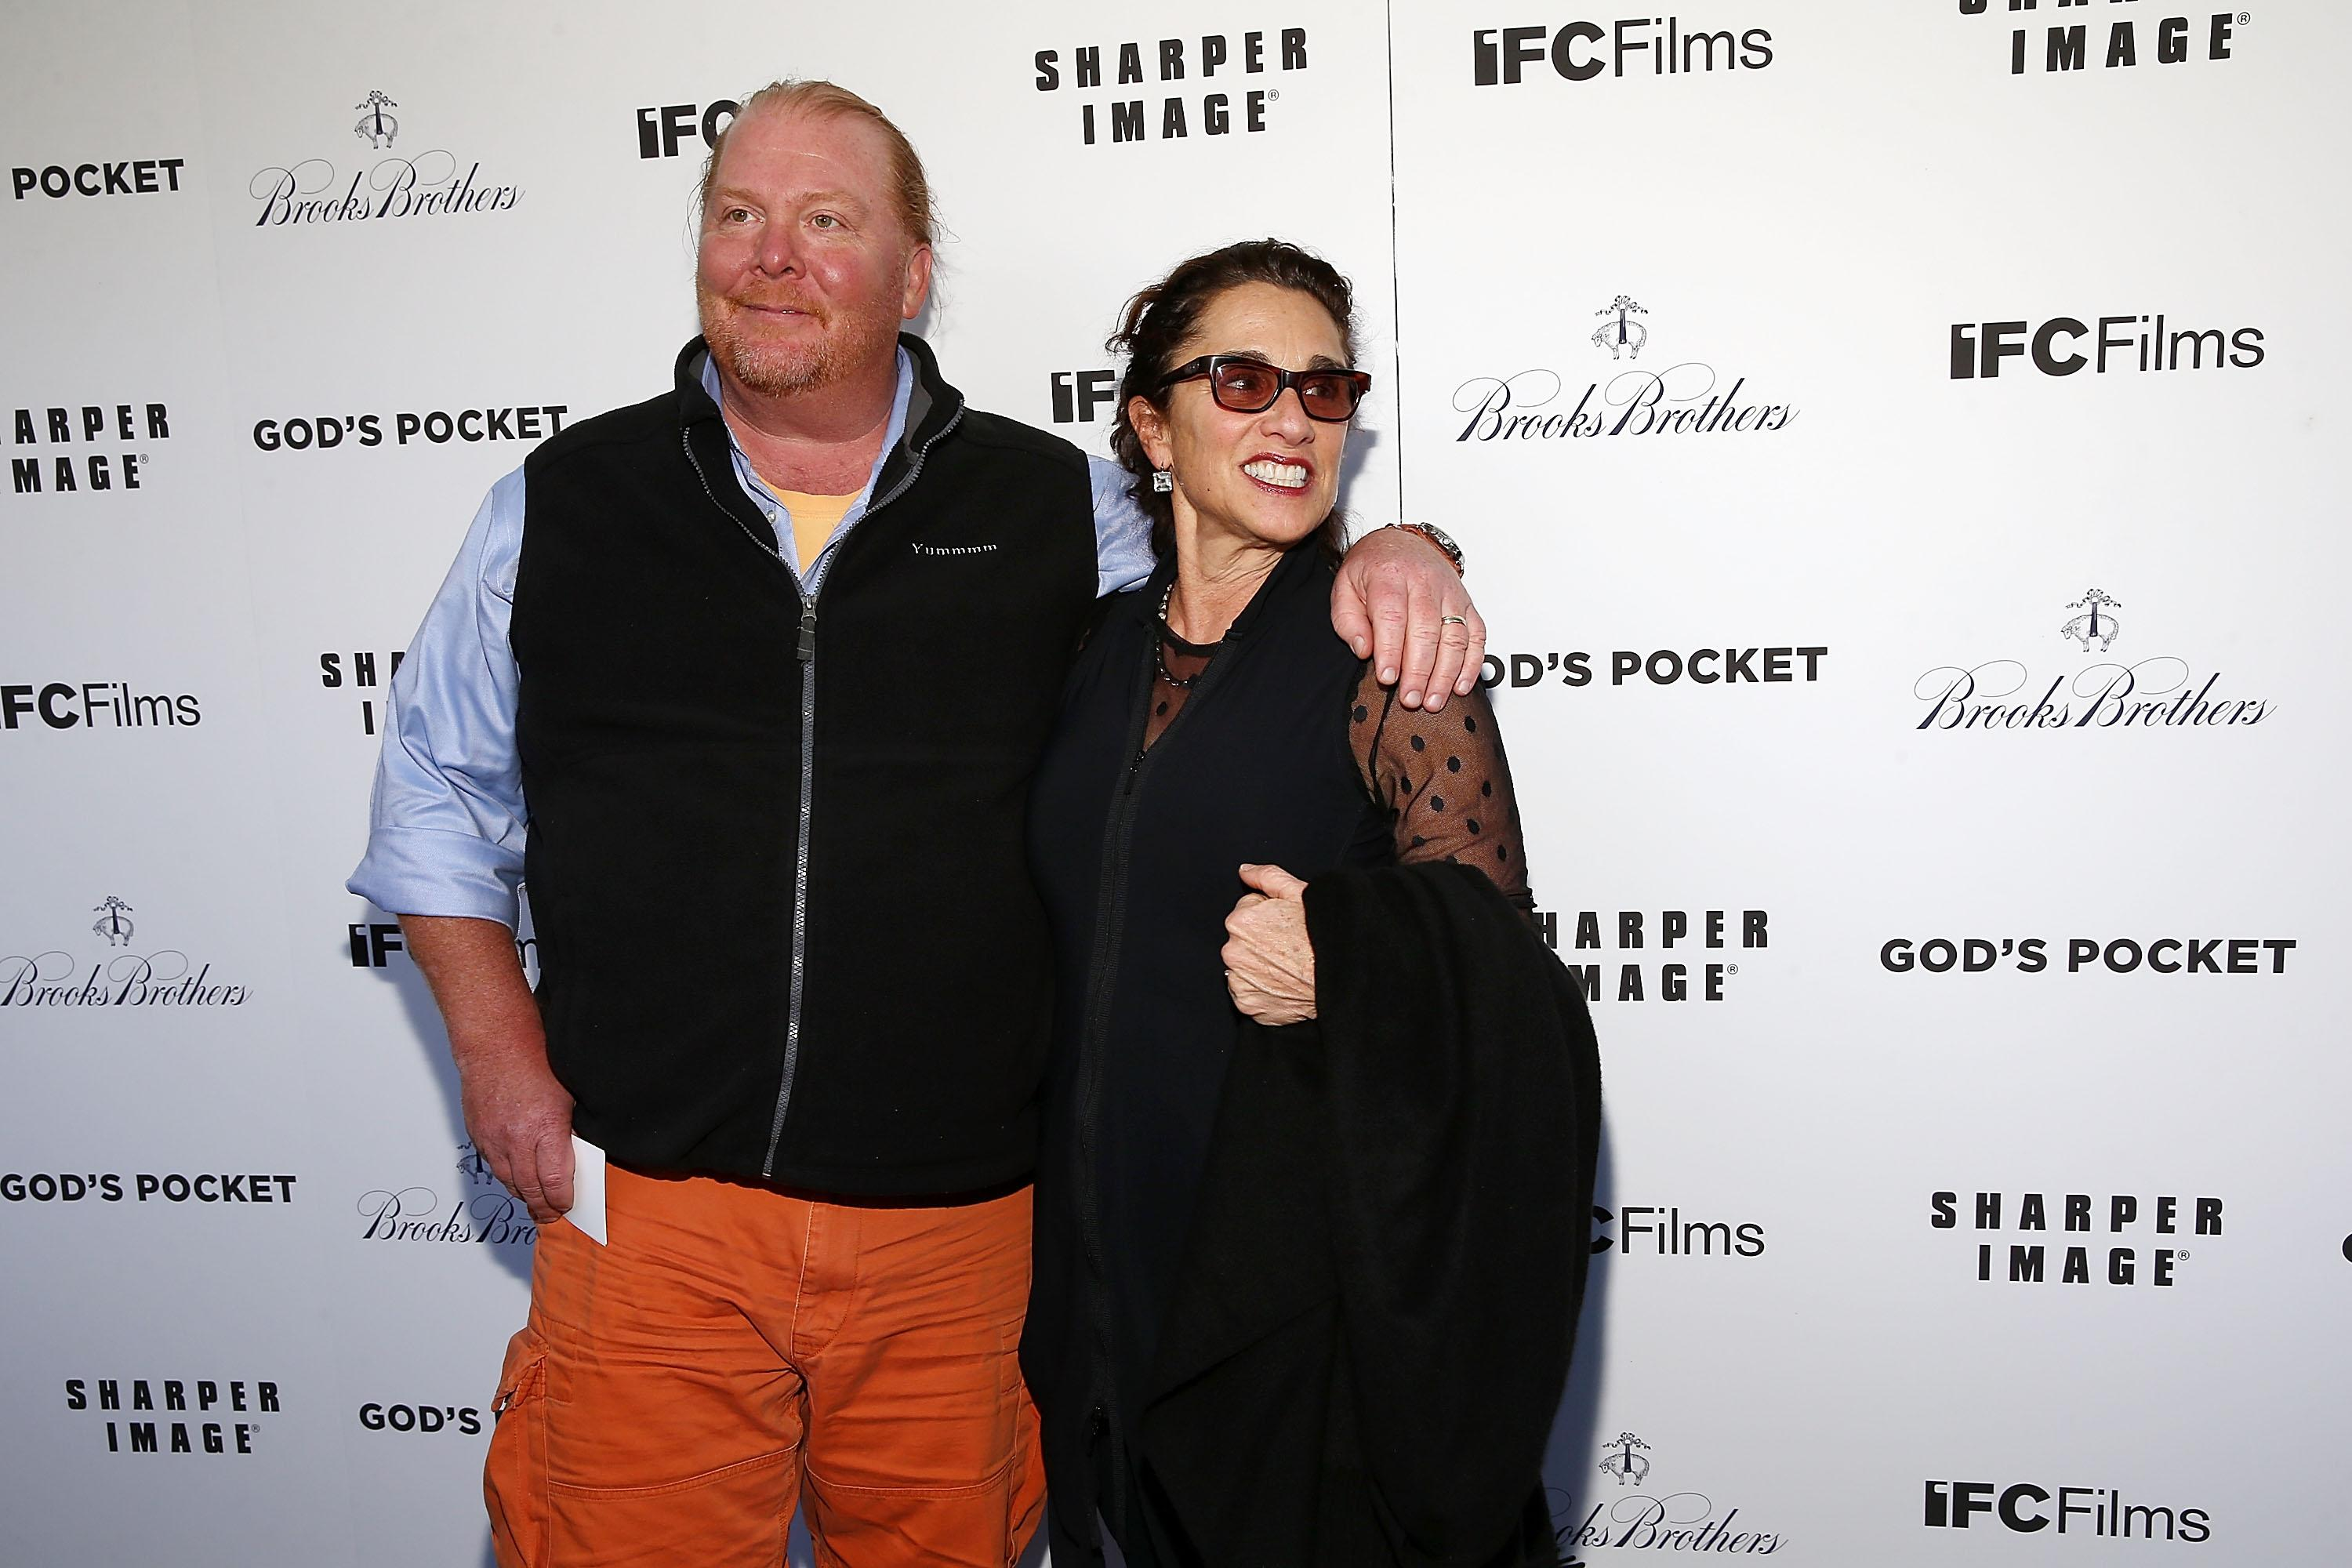 Mario Batali stepping down from his business after sexual misconduct accusations